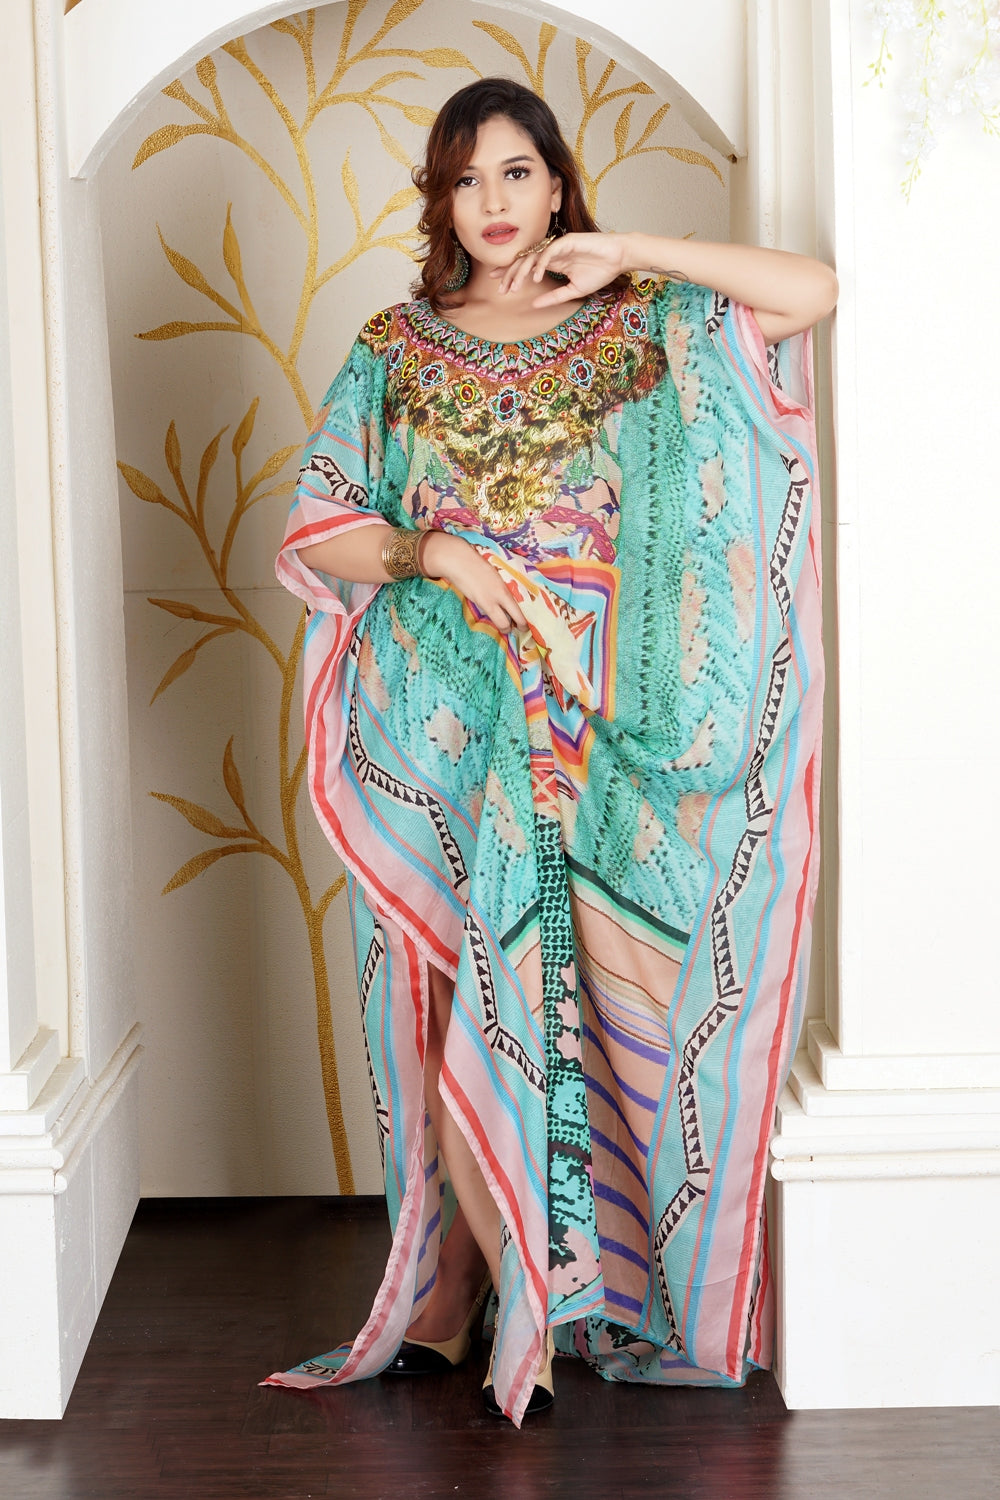 Python Skin Print with basic Geometric Patterns in between of Long Silk Kaftan - Silk kaftan